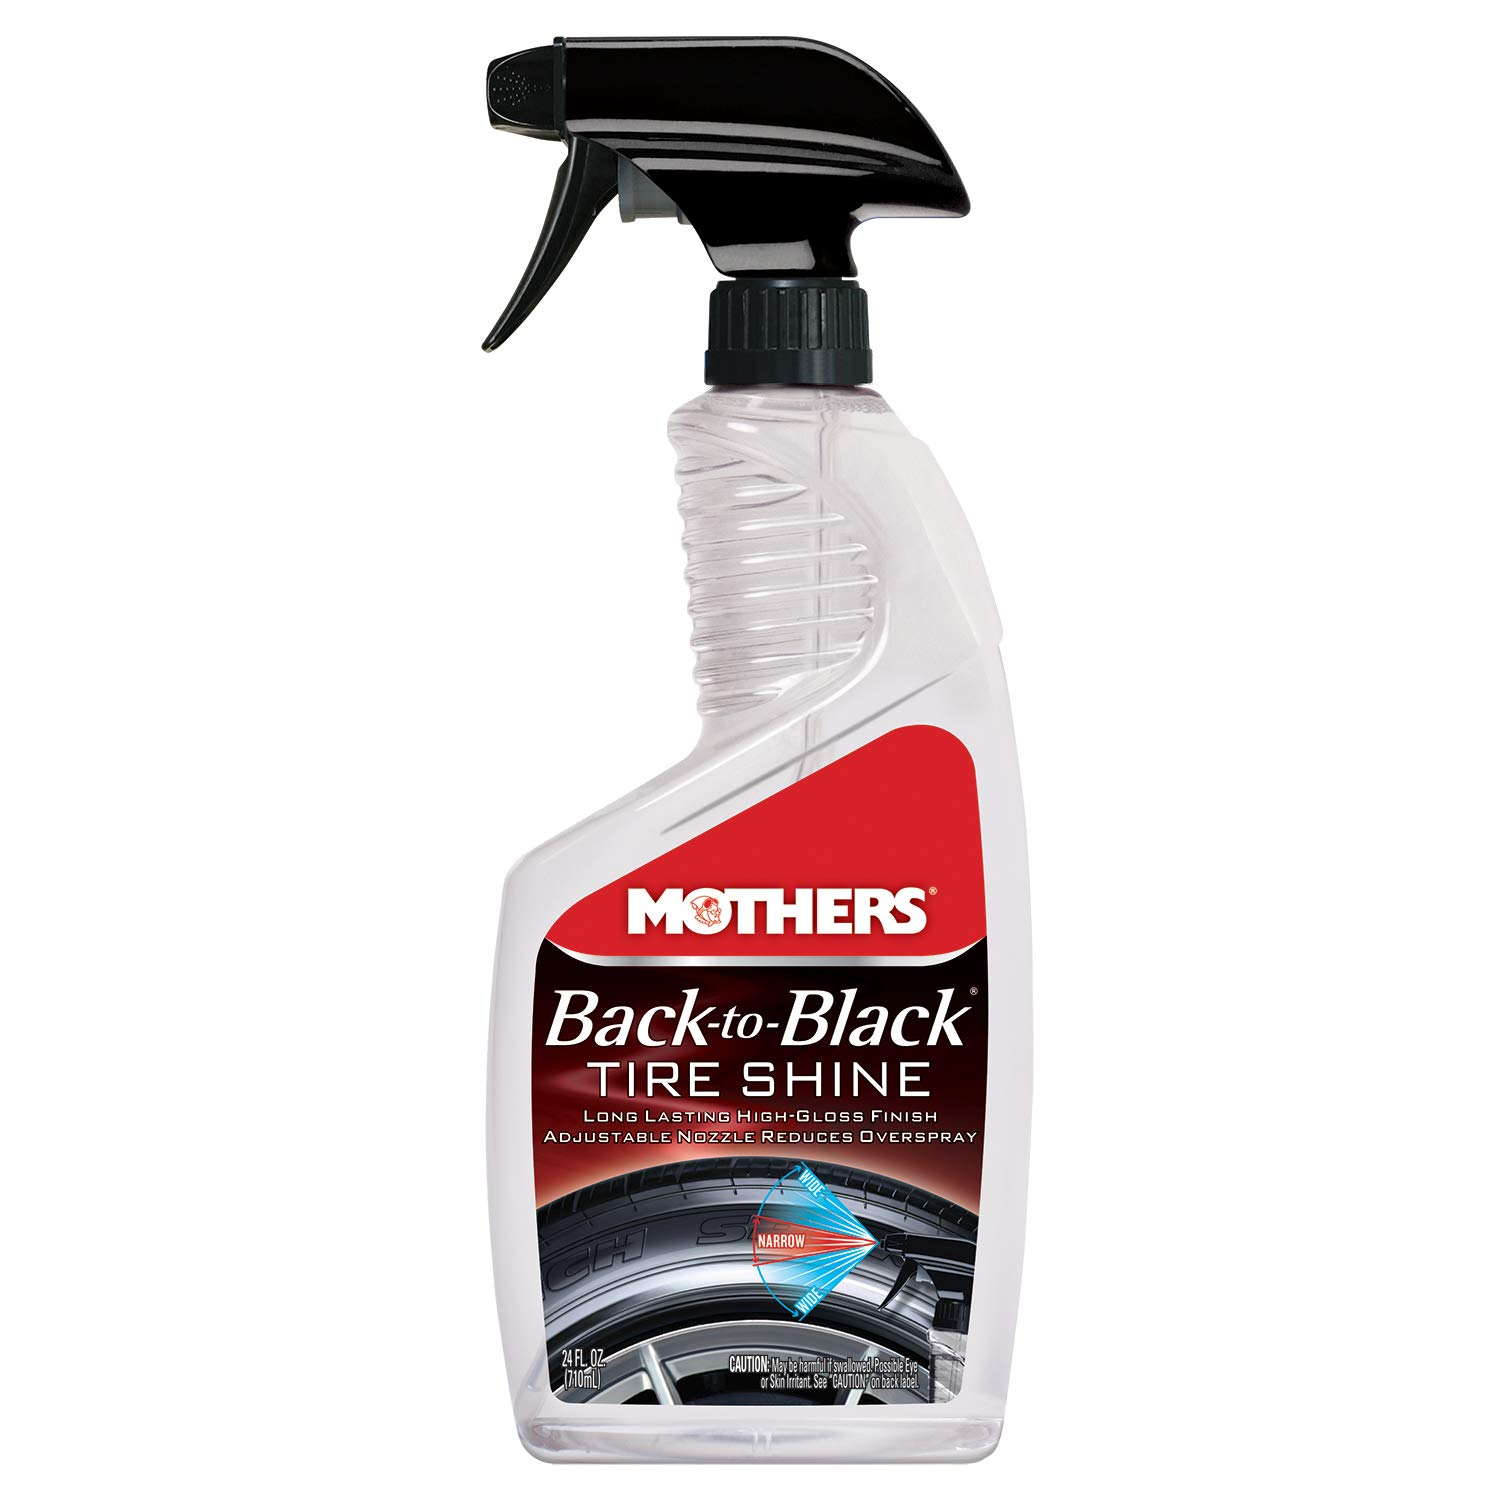 Mothers 06924-6 Back-to-Black Tire Shine - 24 oz, (Pack of 6)